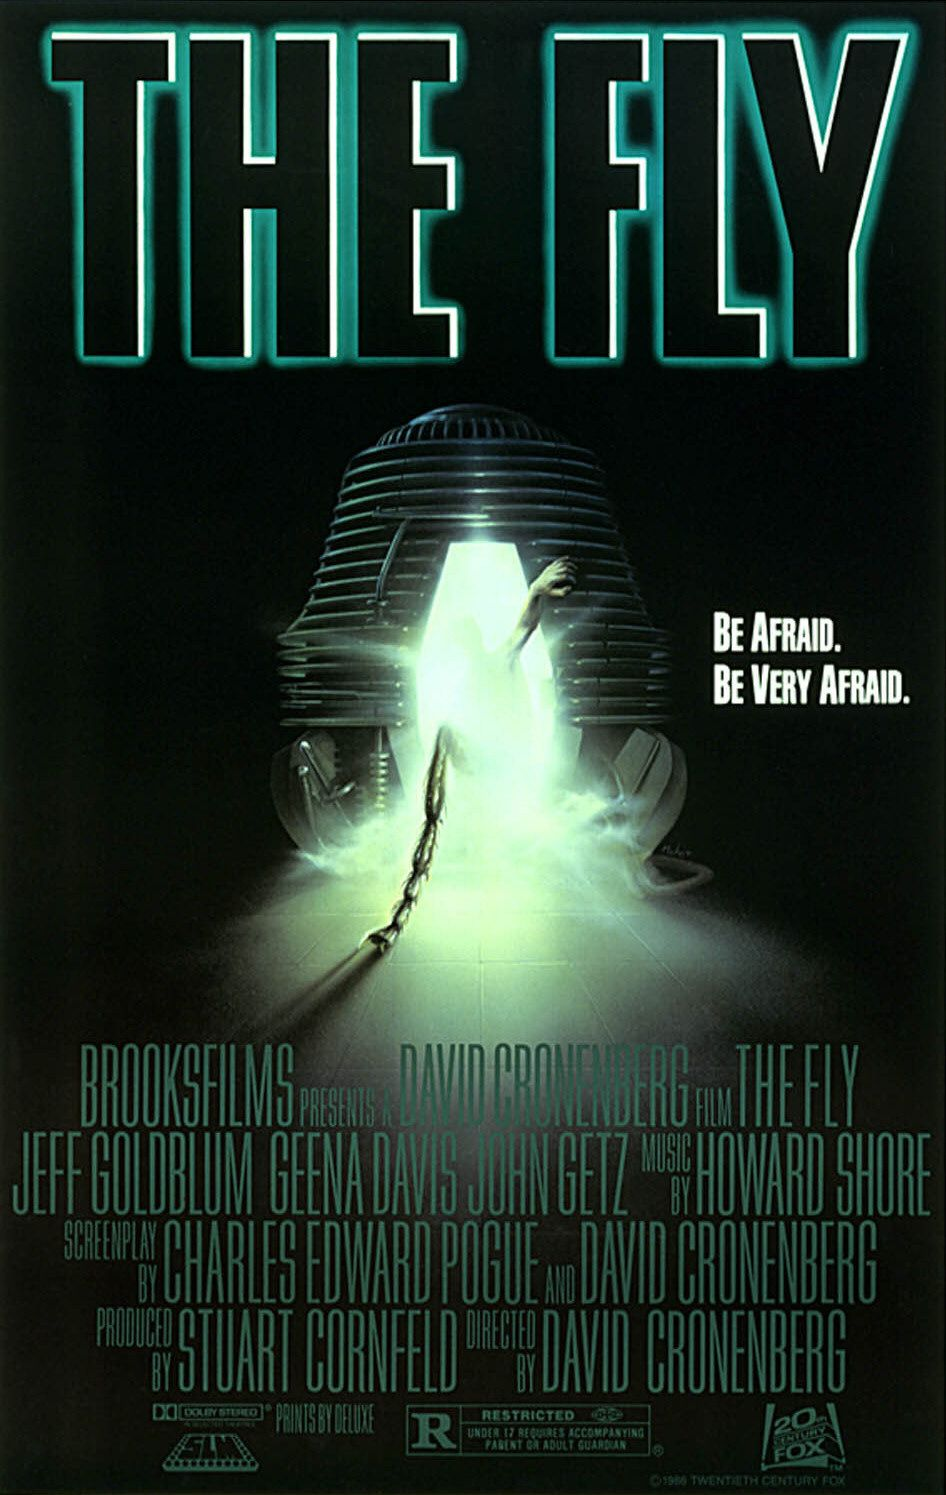 The Fly 1986 movie poster